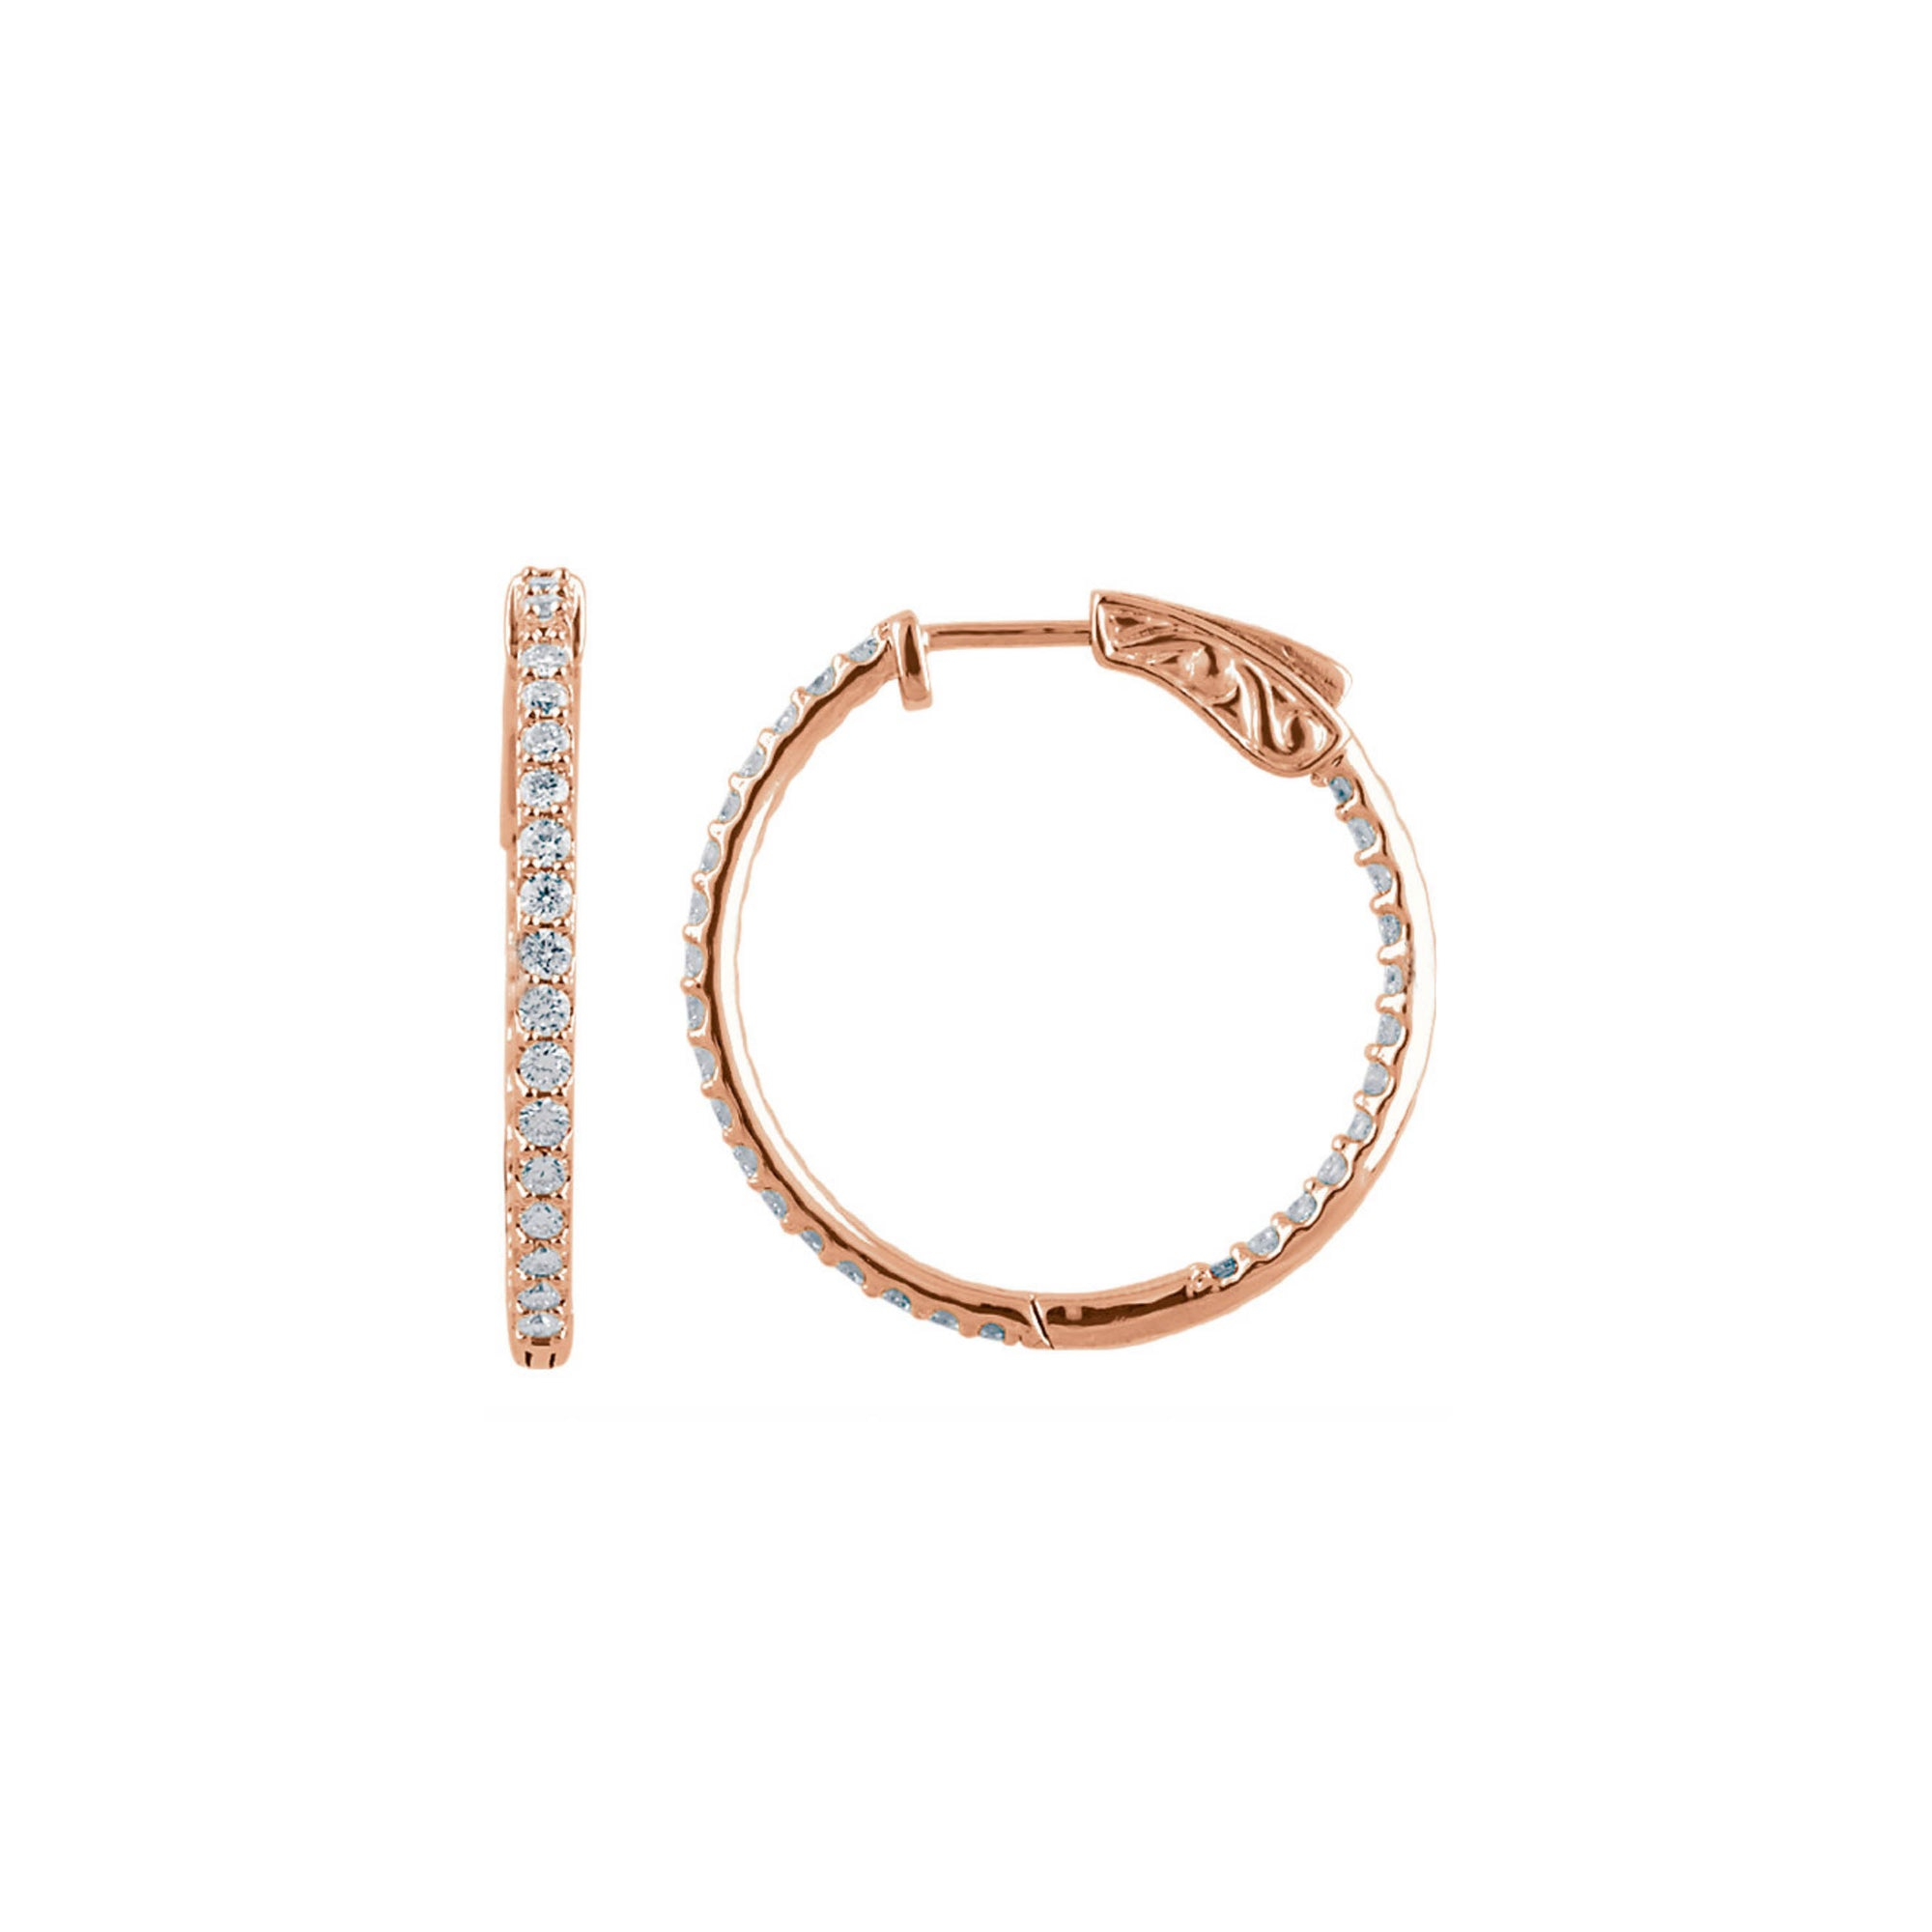 Diamond Earring Hoops, 3.00 Carat Total Weight in 14k White, Yellow or Rose Gold - Talisman Collection Fine Jewelers